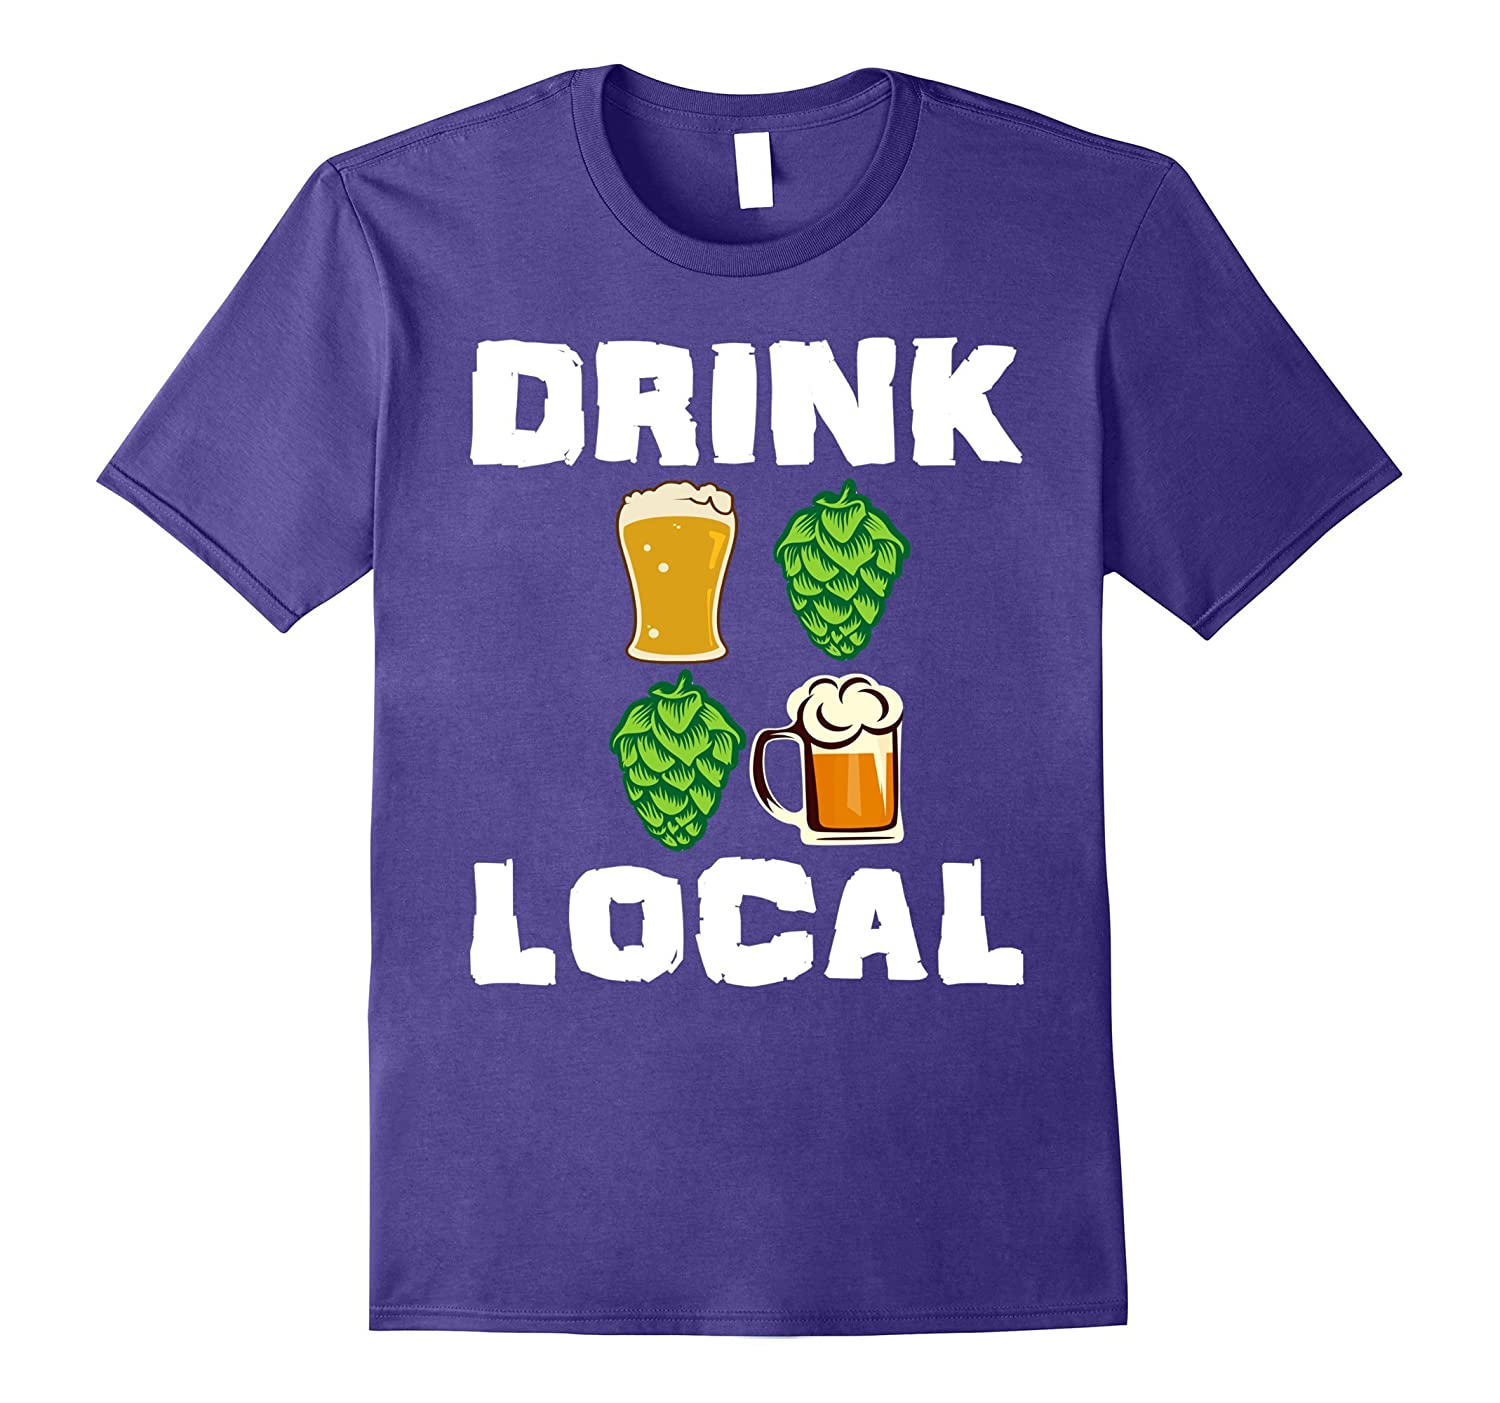 Drink local funny craft beer ipa drinking drunk local for Funny craft beer shirts